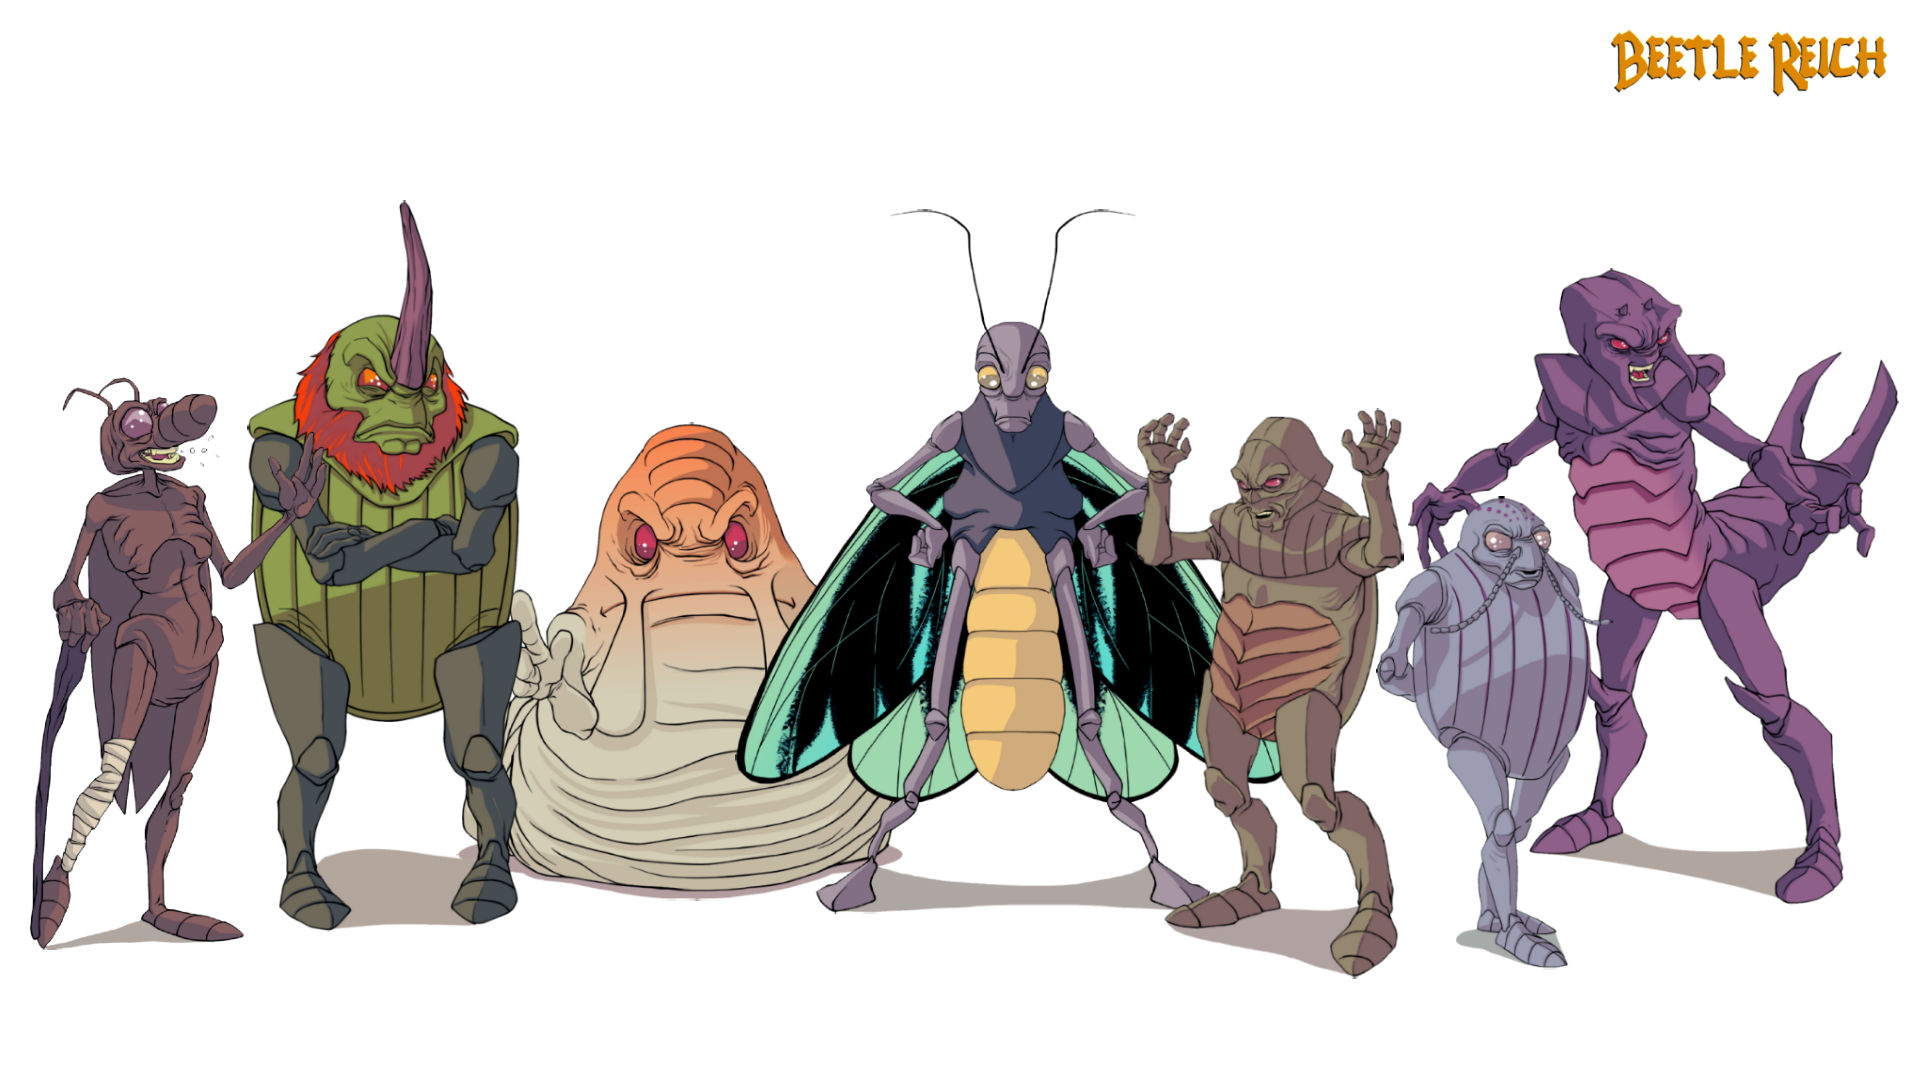 Beetle Reich - Characters